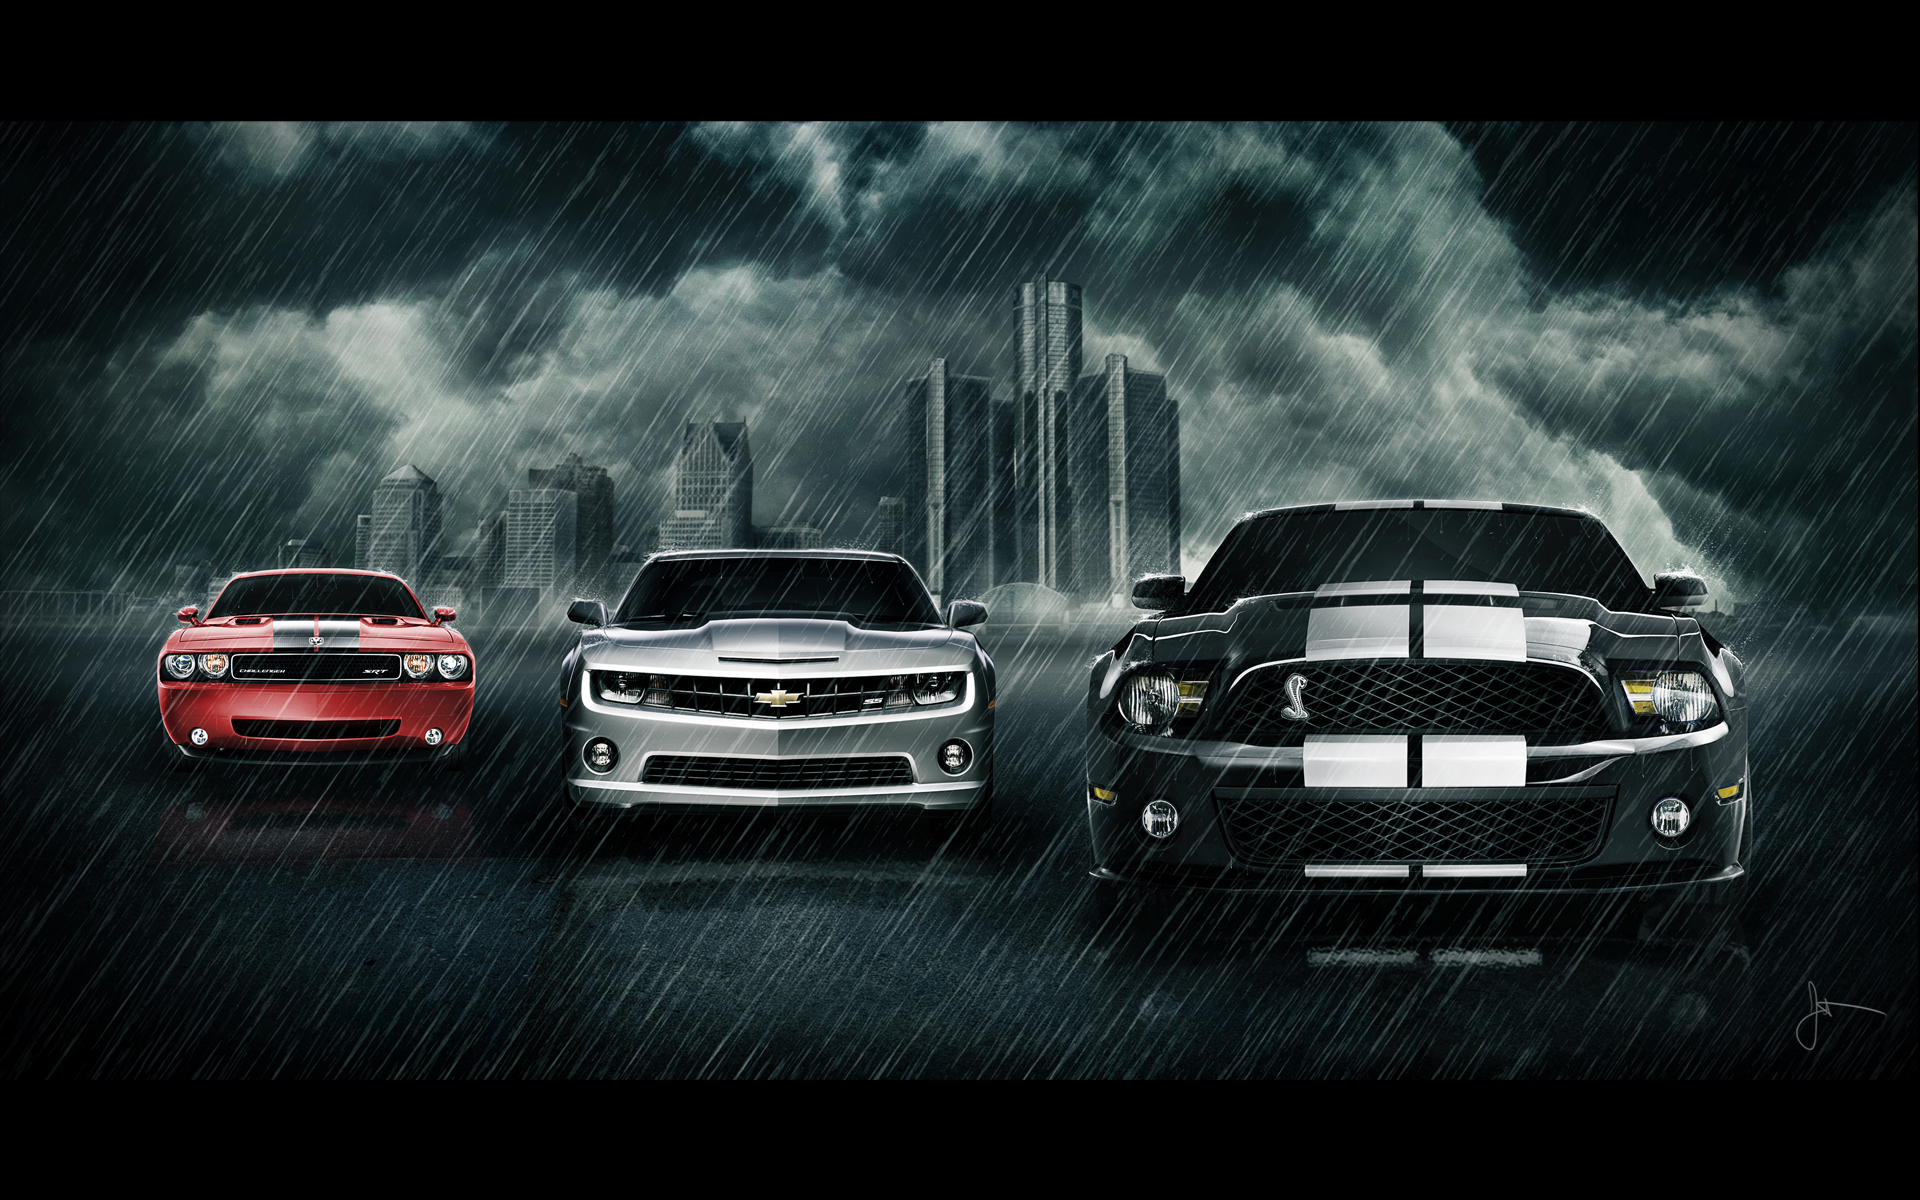 931 Car HD Wallpapers | Backgrounds - Wallpaper Abyss